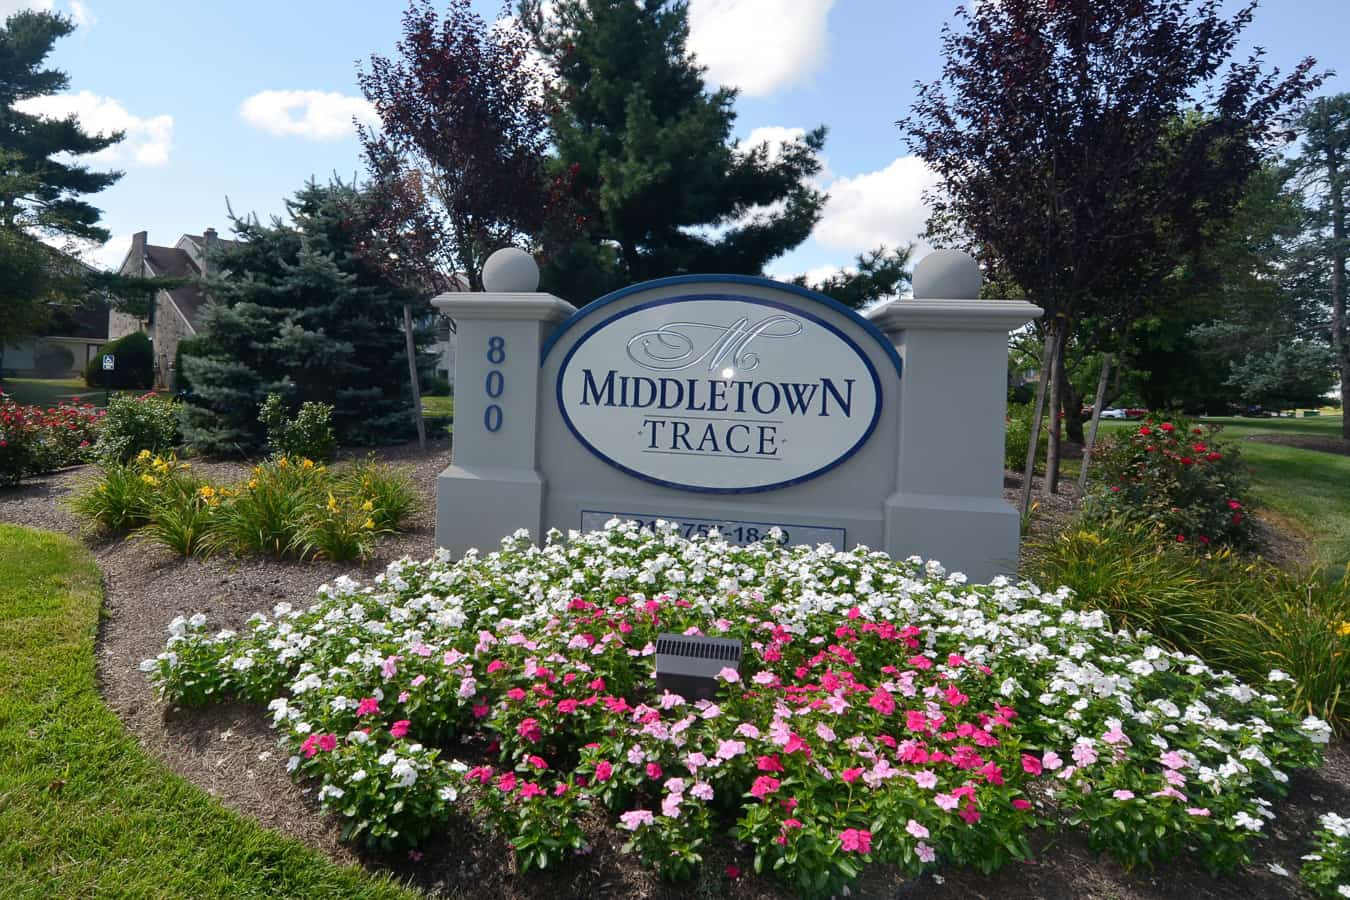 Middletown Trace